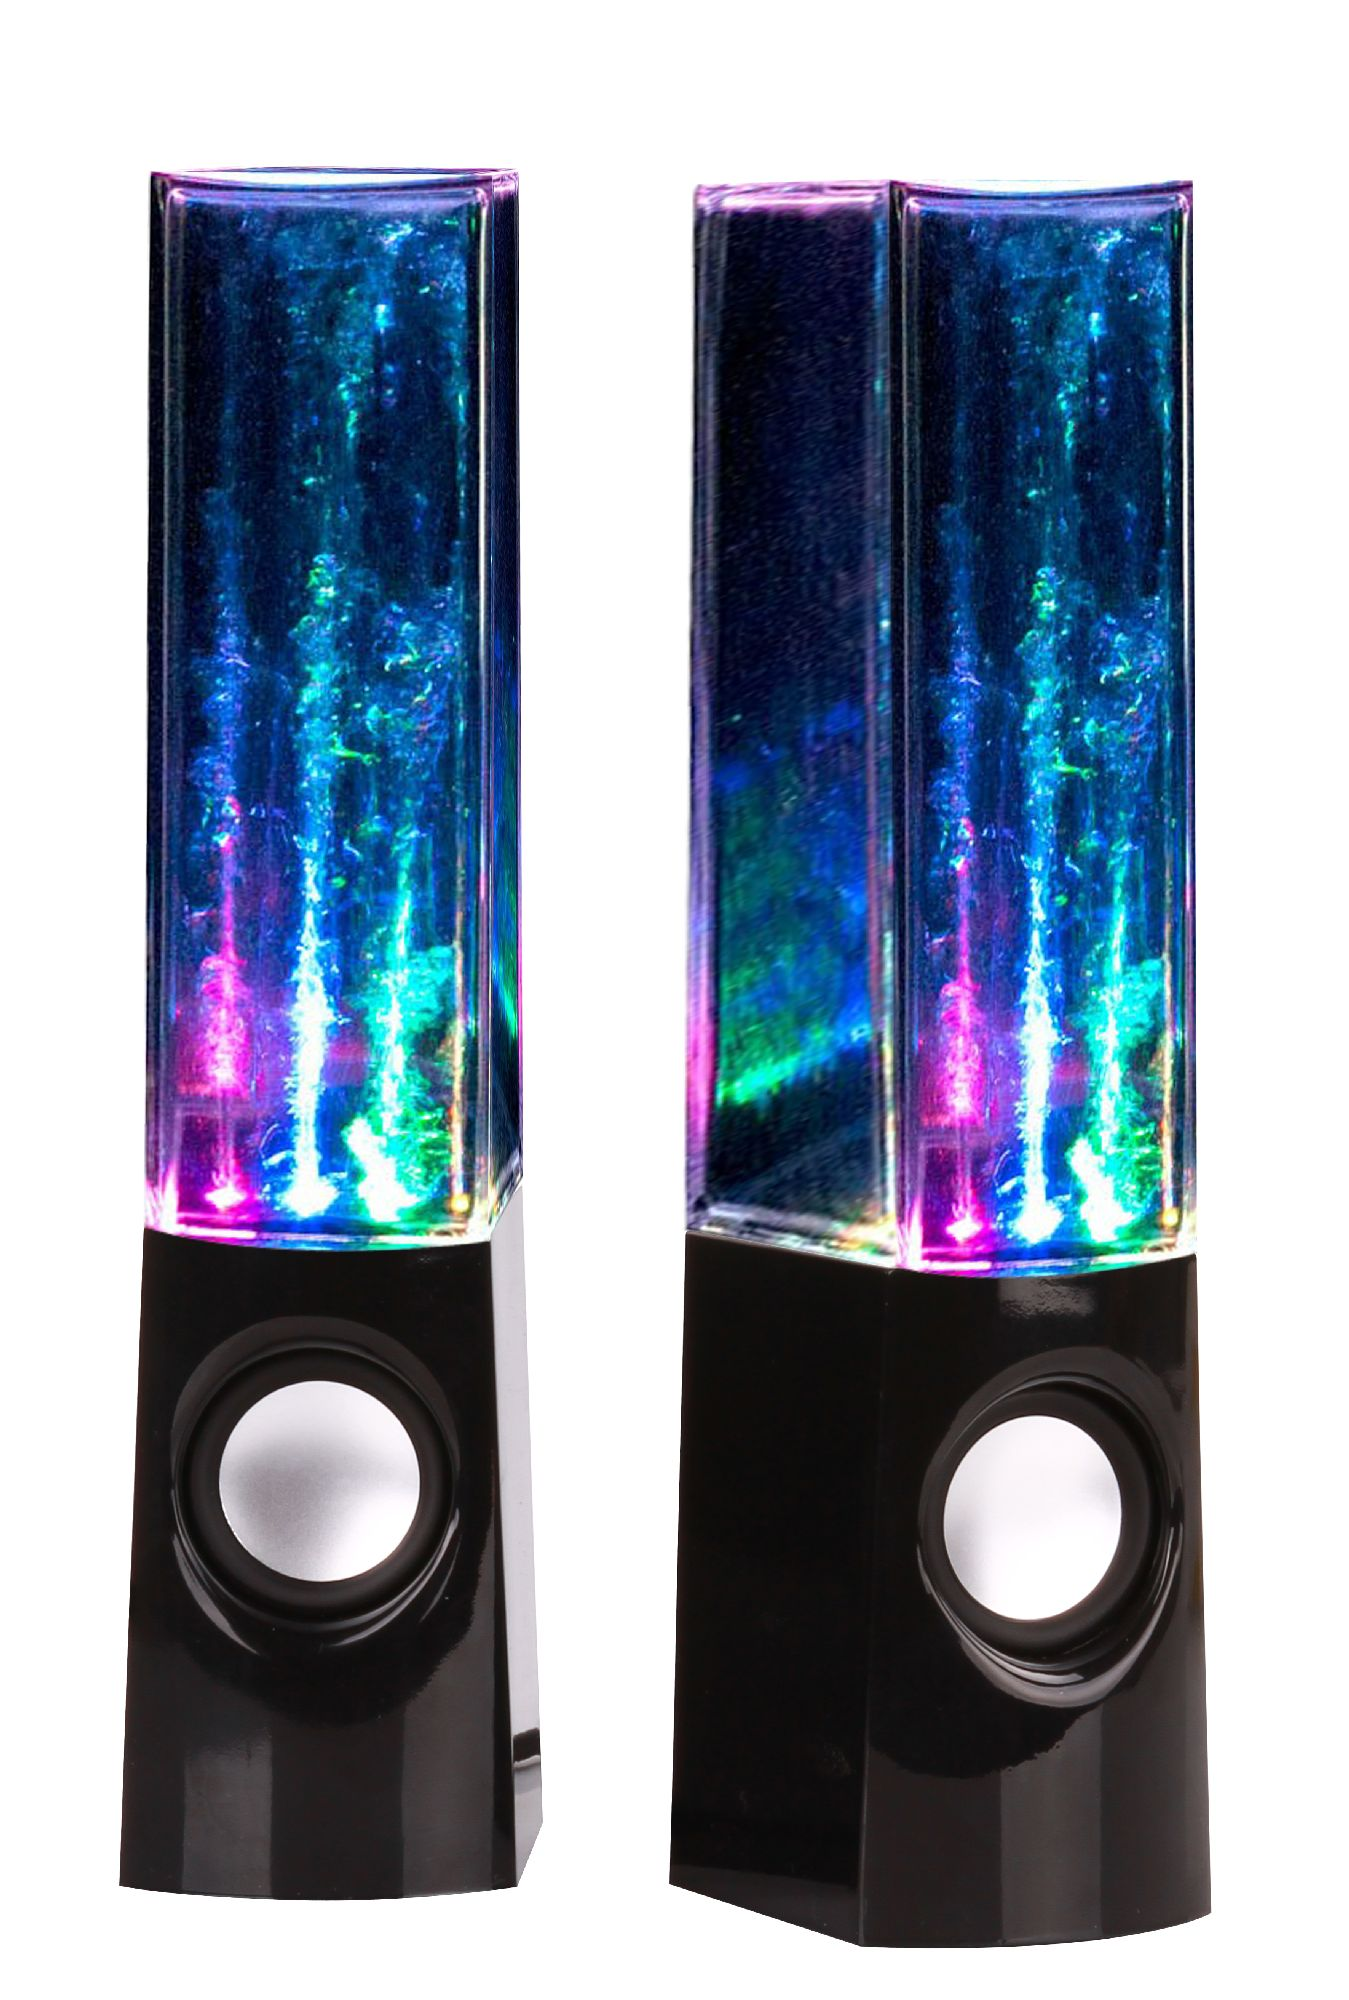 Bolan Plug & Play Multi-Color Illuminated Dancing Water Speaker For iPhone, iPad, iPod, MP3 Player